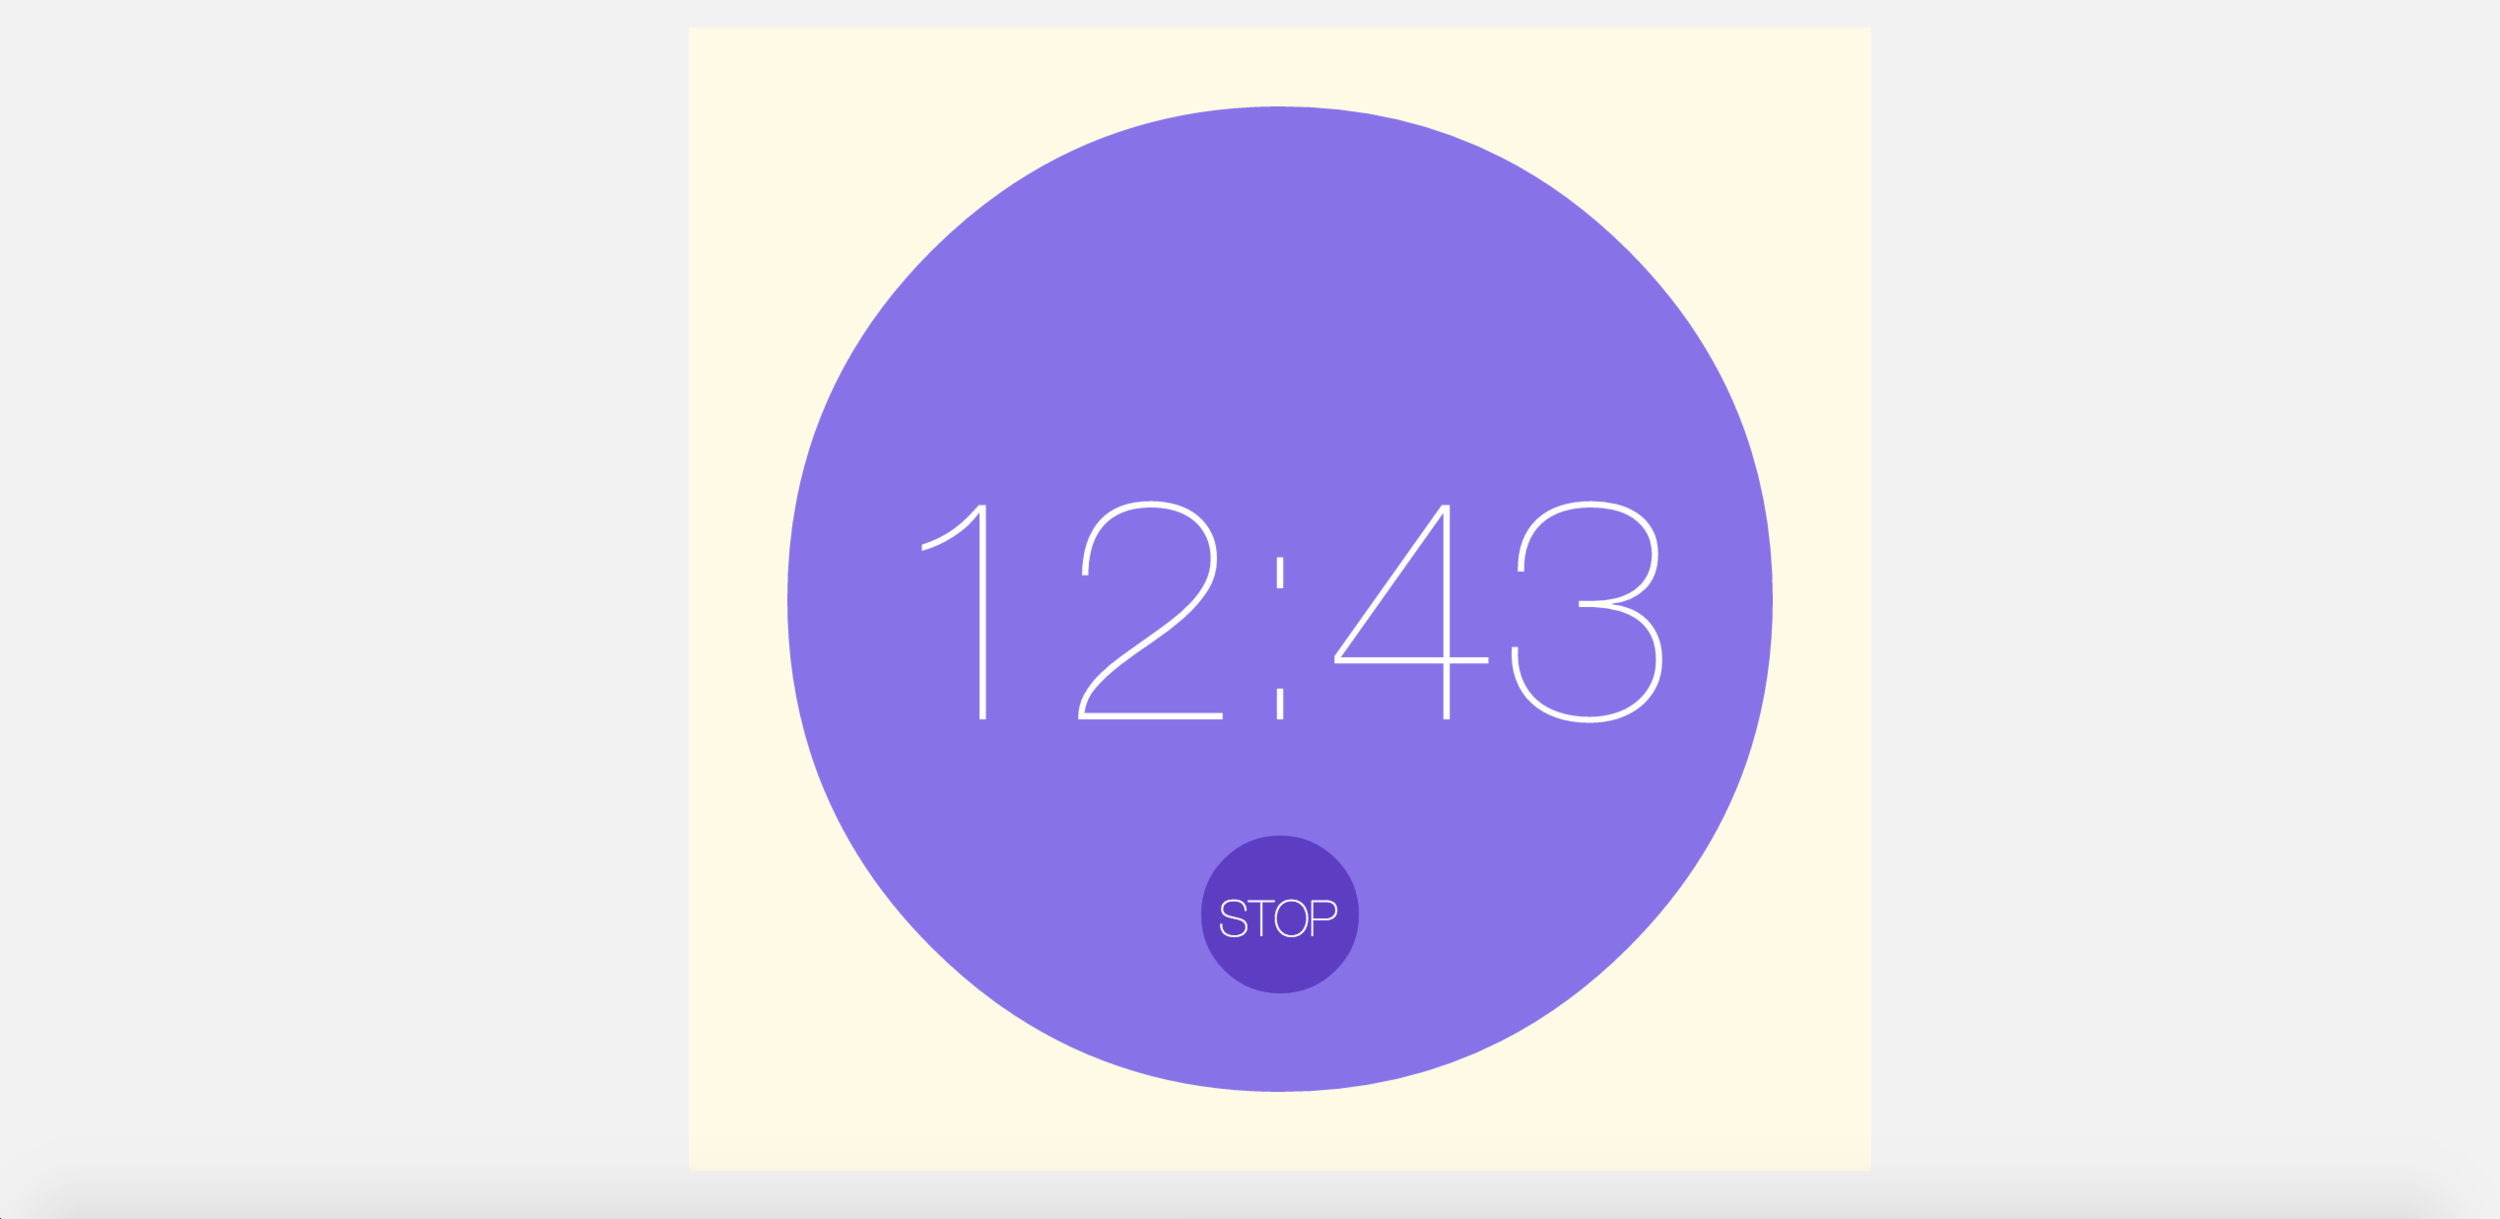 When the alarm is on, the purple circle and the time will blink, and people can hit STOP button to stop the alarm.